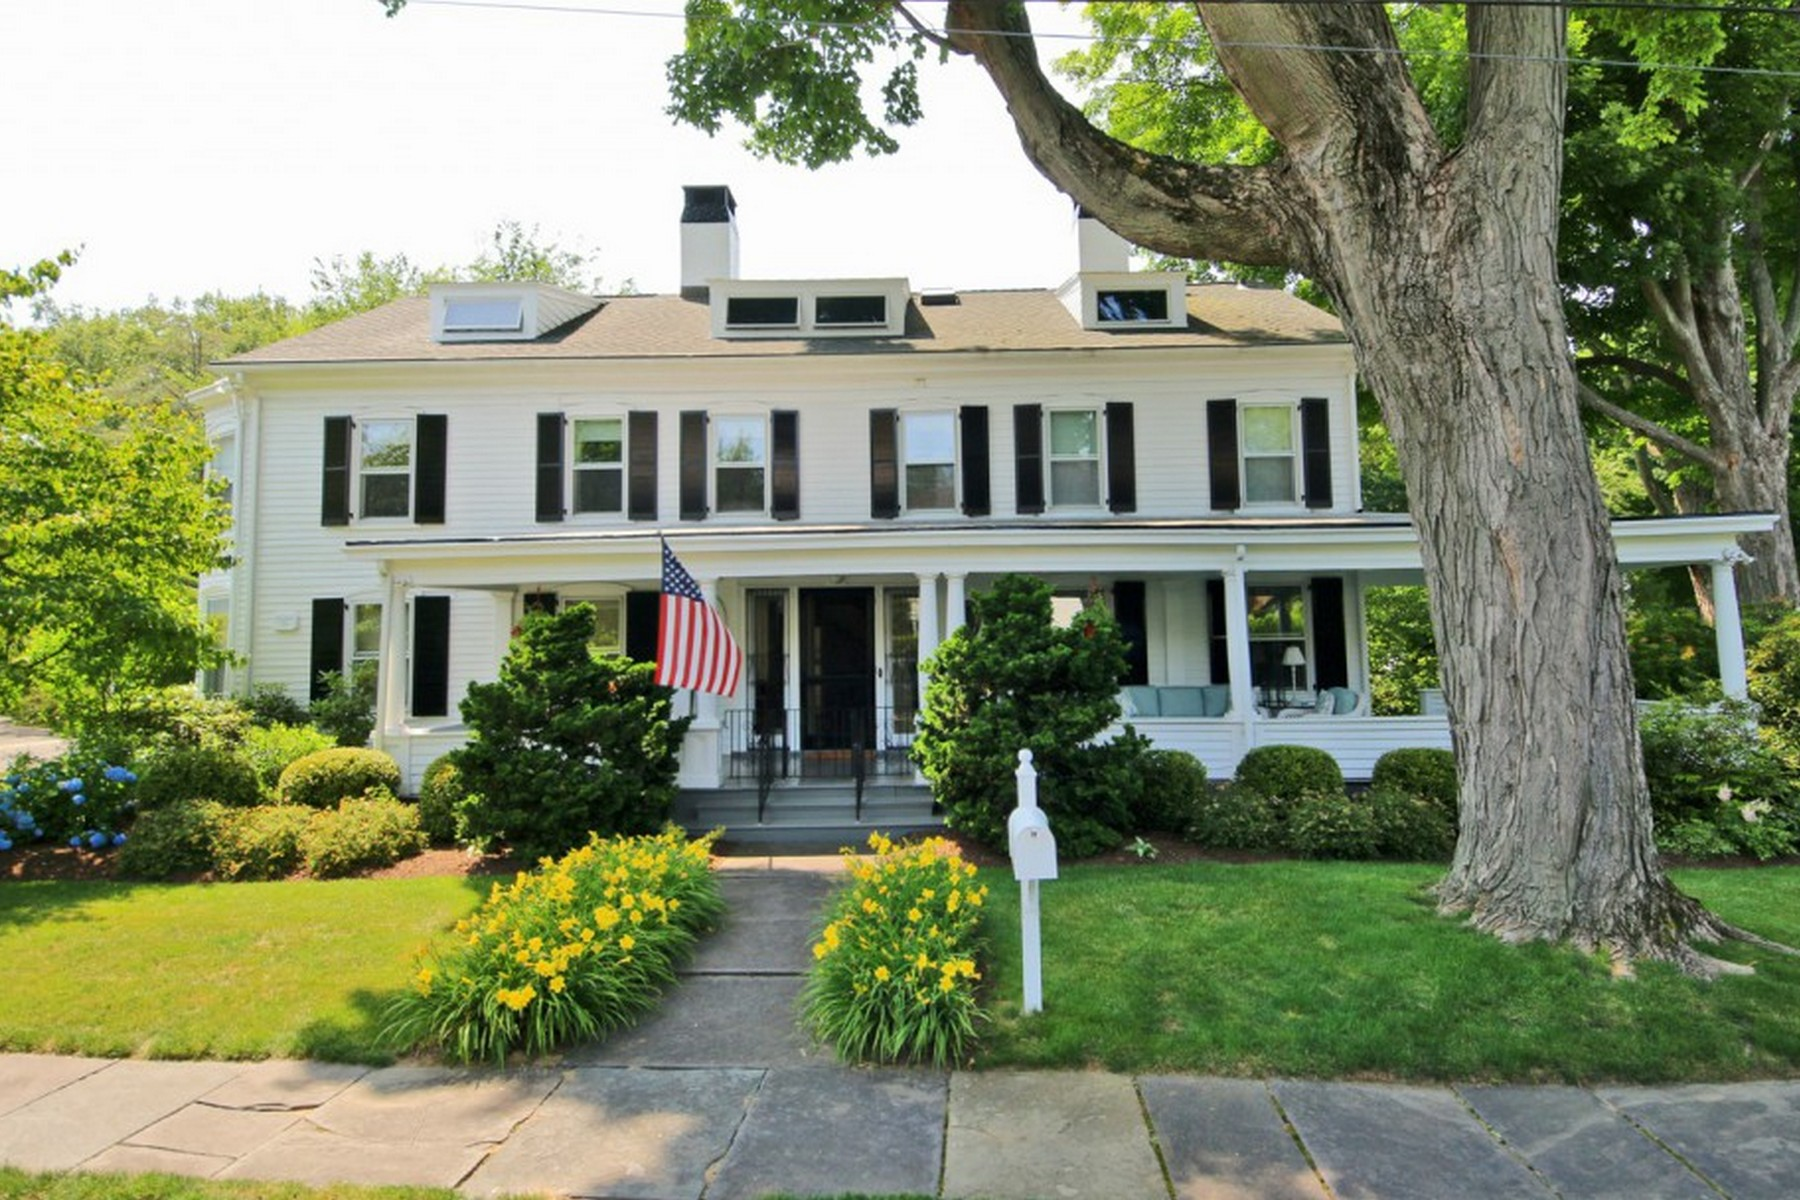 Casa Unifamiliar por un Venta en PAUL SHEFFIELD HOUSE - SOUTHPORT VILLAGE 72 Willow Street Fairfield, Connecticut 06890 Estados Unidos